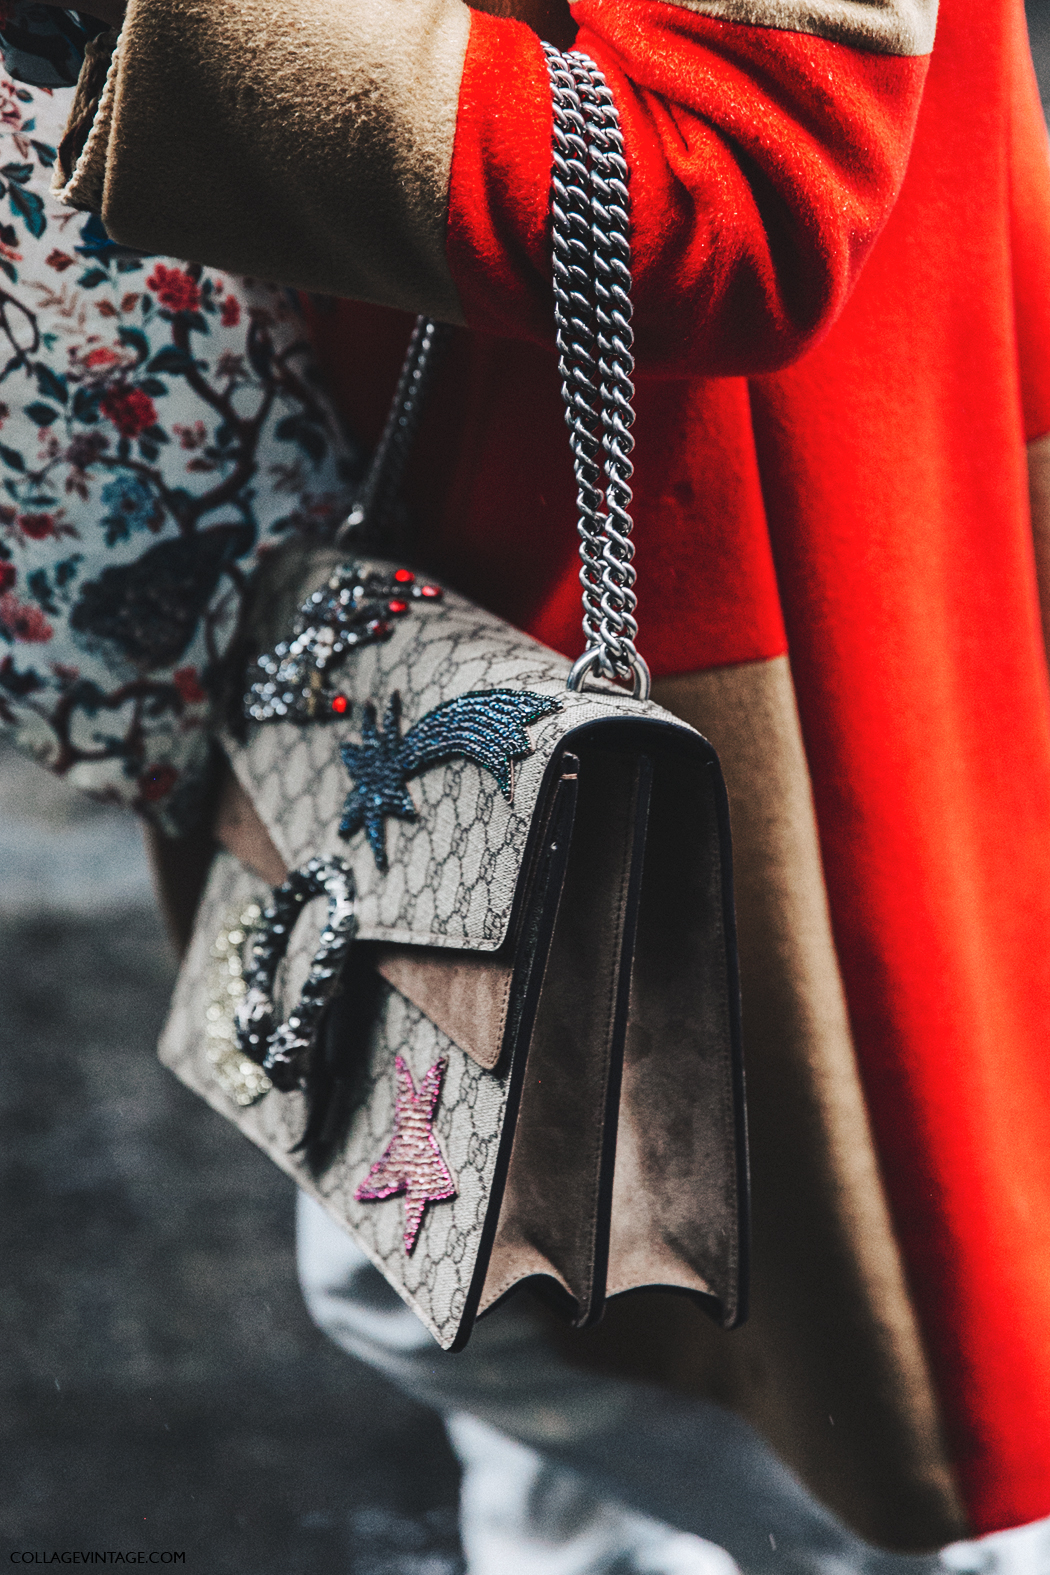 Milan_Fashion_Week_Fall_16-MFW-Street_Style-Collage_Vintage-Gucci_Bag